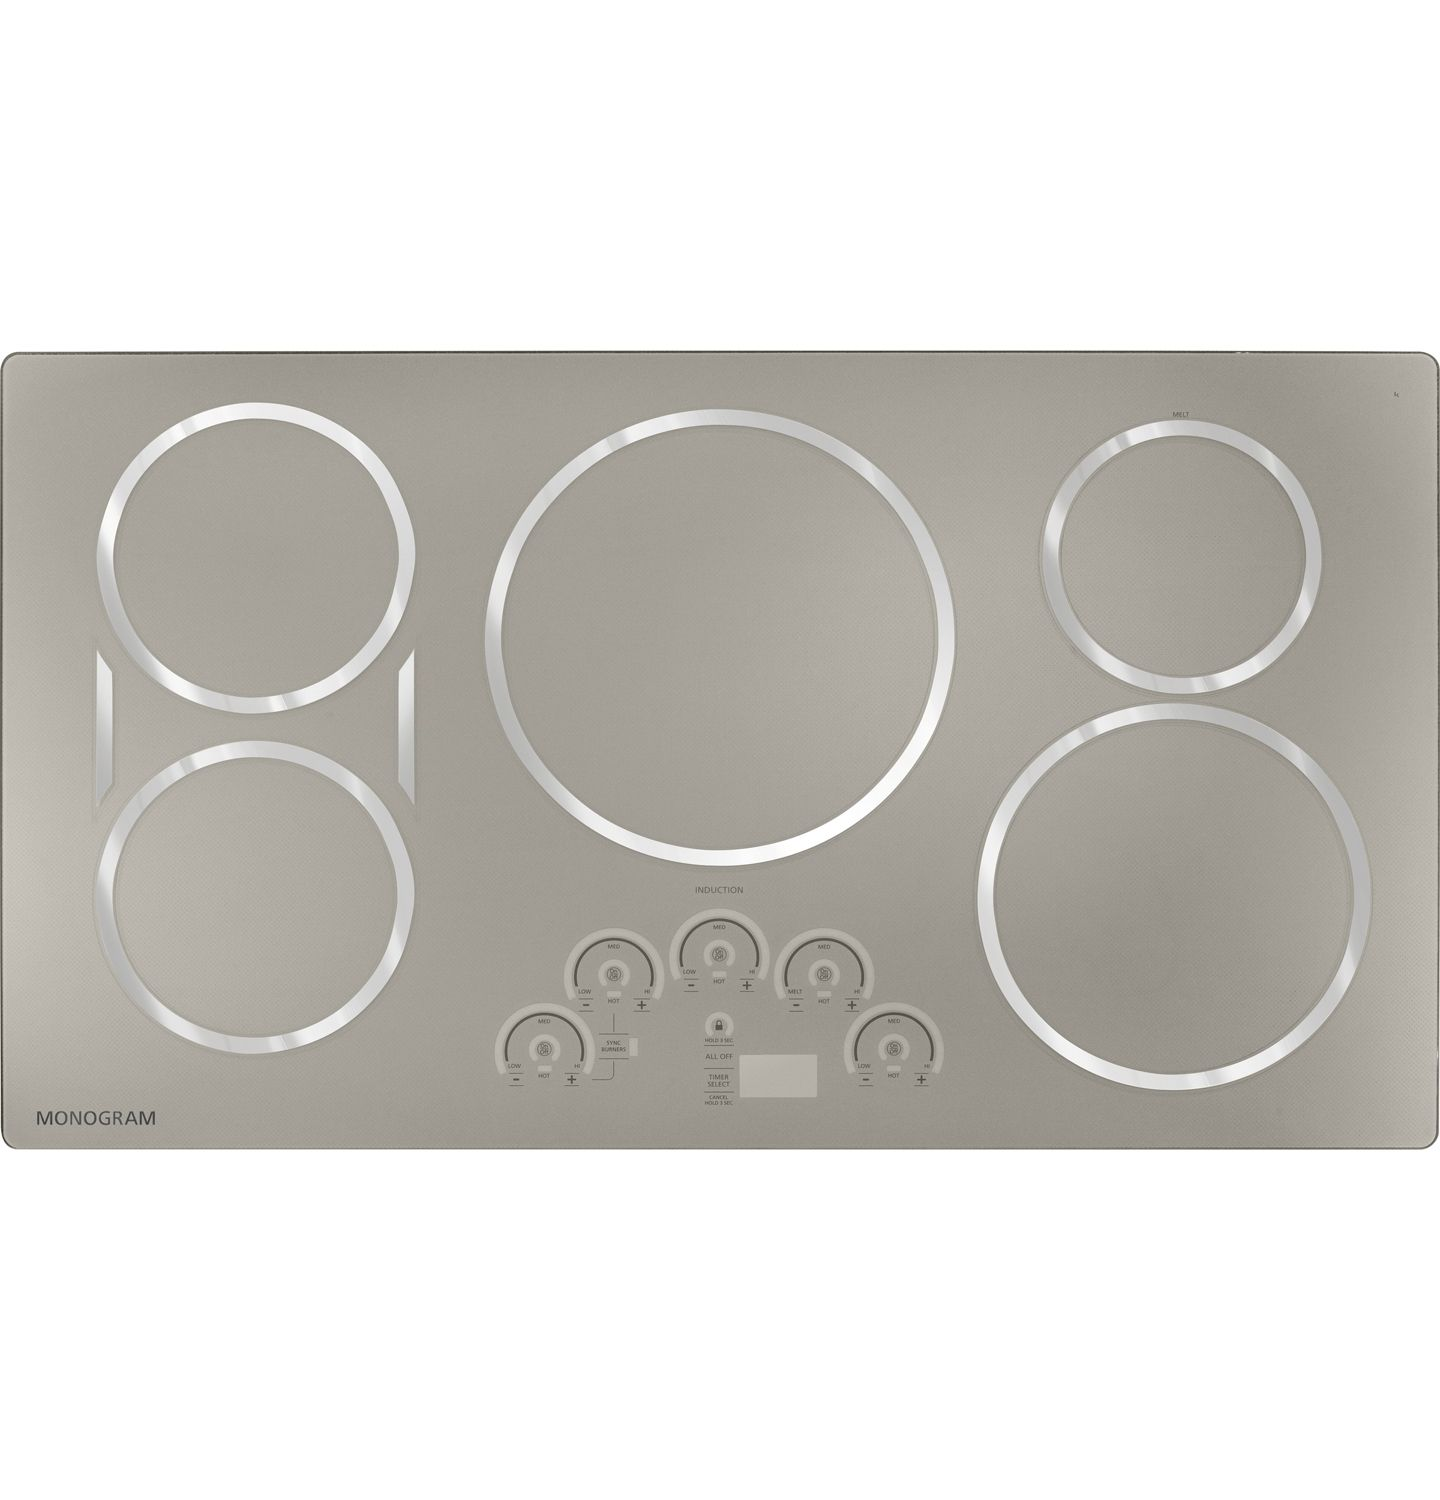 Monogram 36 Stainless Steel Electric Induction Cooktop Zhu36rsjss